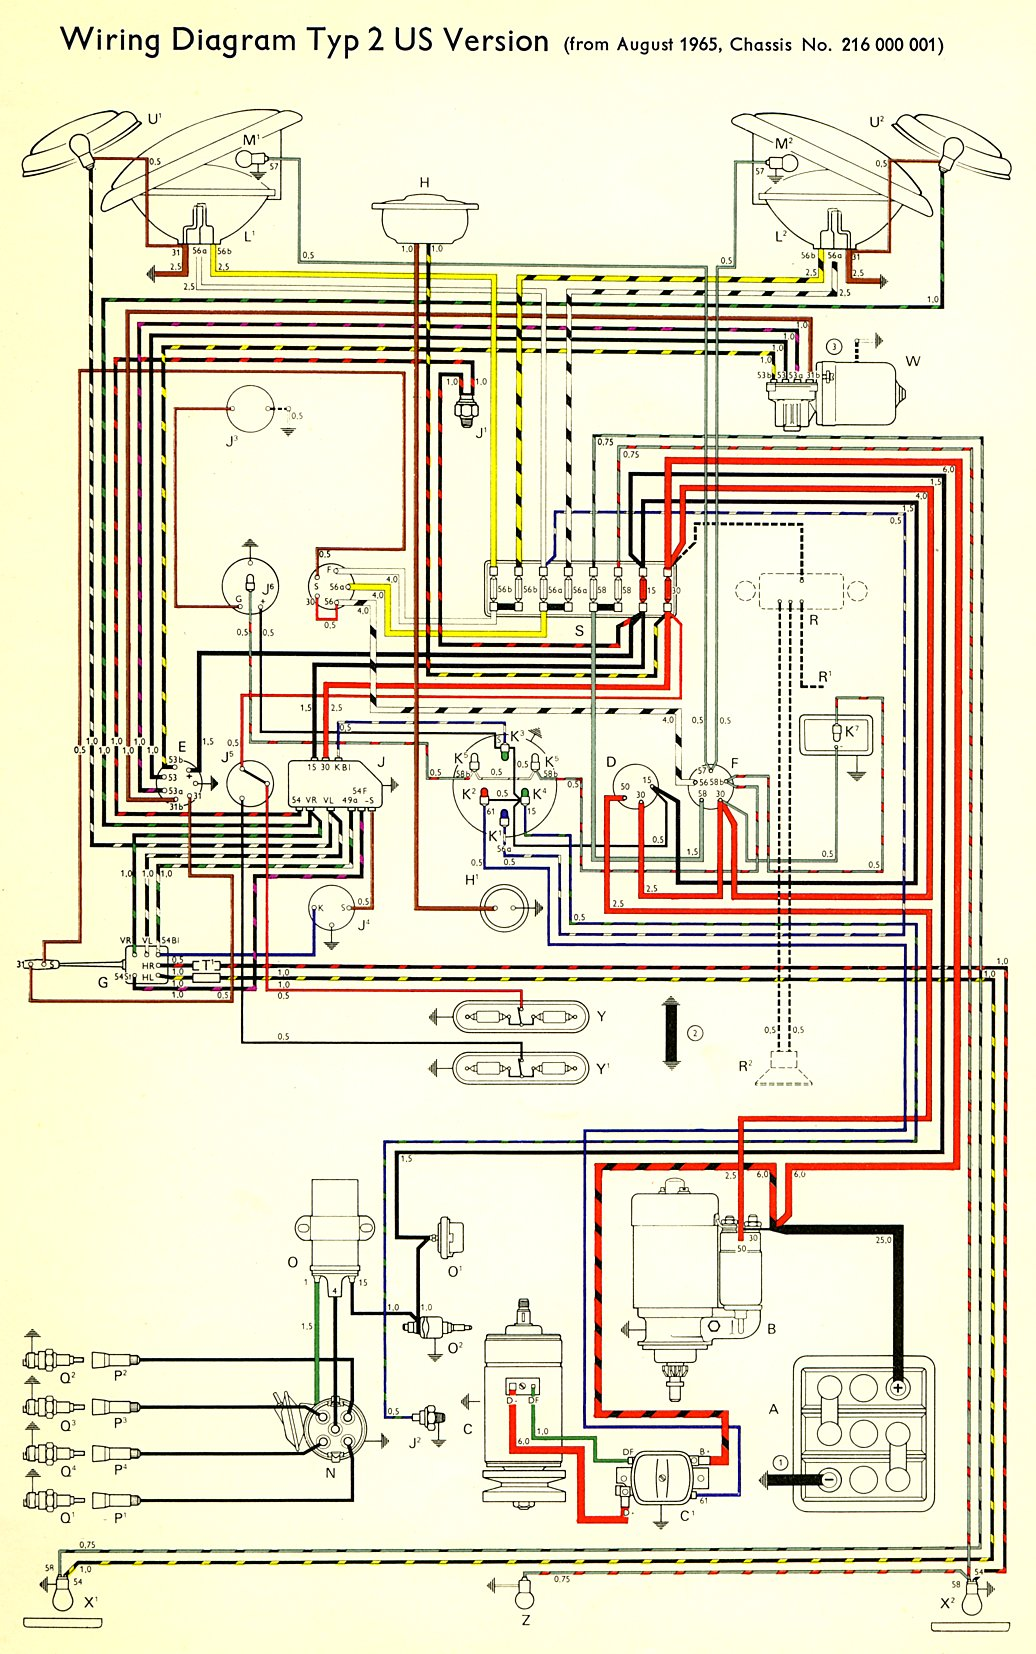 [SCHEMATICS_48IS]  0E1 1967 Mustang Color Wiring Diagram | Wiring Library | 1966 Mustang Color Wiring Diagram |  | Wiring Library